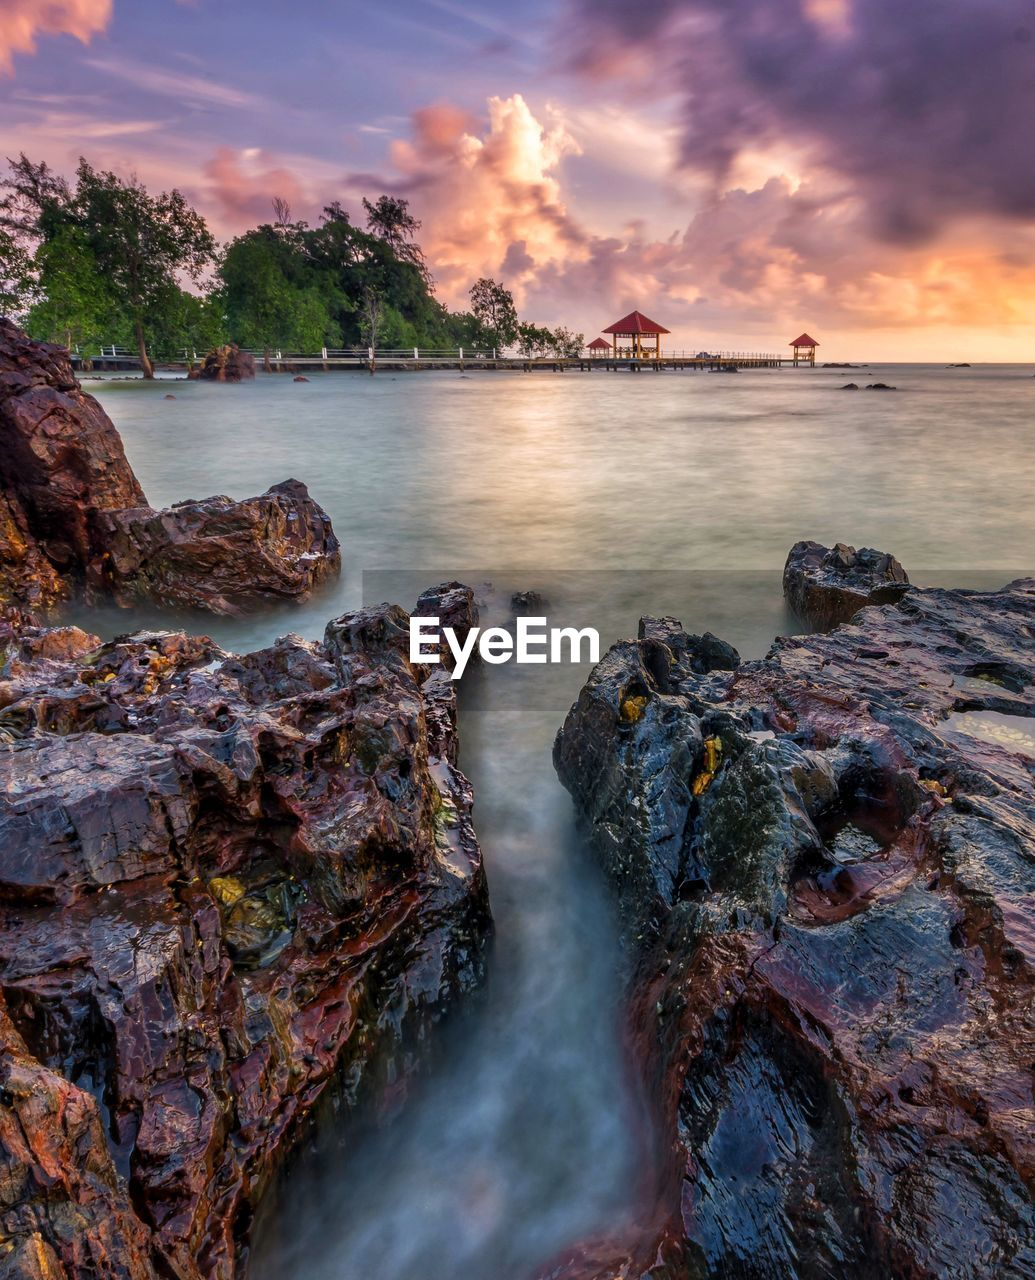 water, sky, sunset, nature, rock - object, beauty in nature, scenics, cloud - sky, outdoors, tranquility, tranquil scene, sea, no people, tree, day